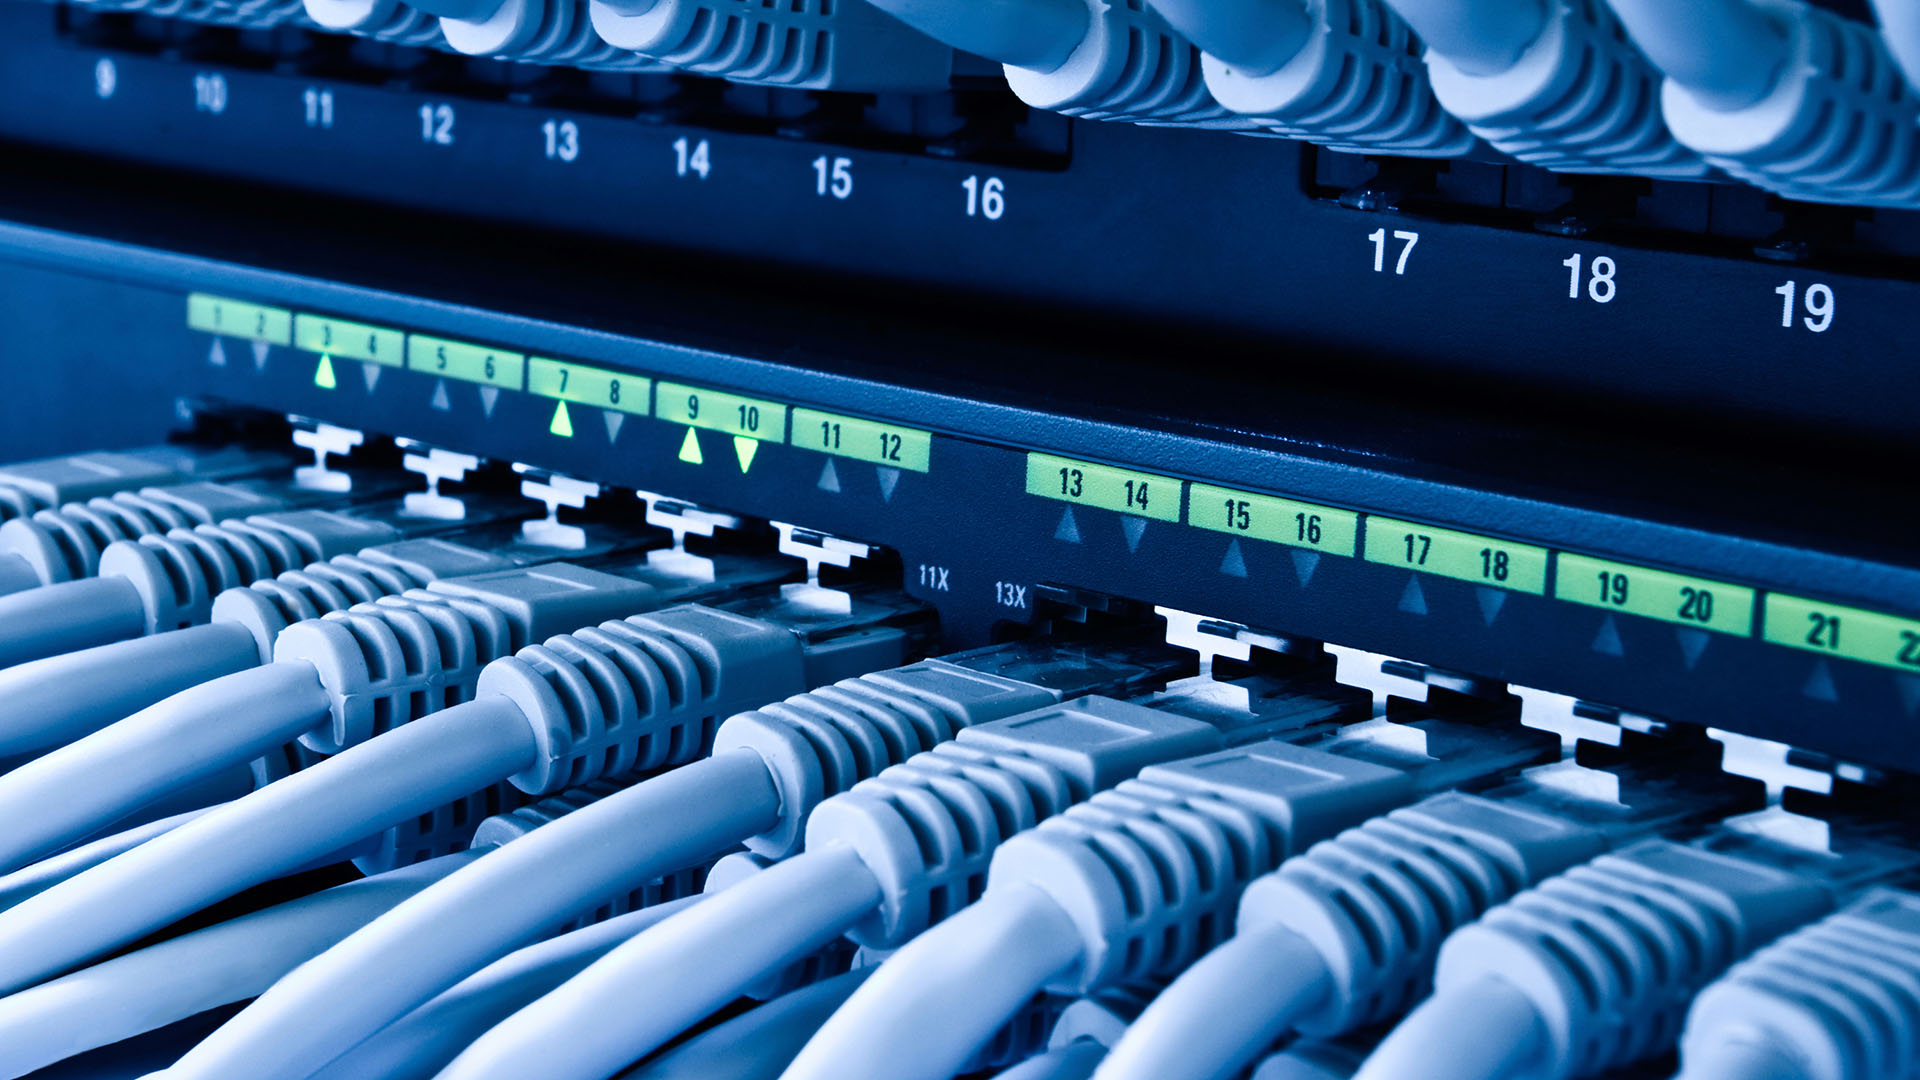 Warner Robins GA High Quality On Site Cabling for Voice & Data Networks, Low Voltage Solutions